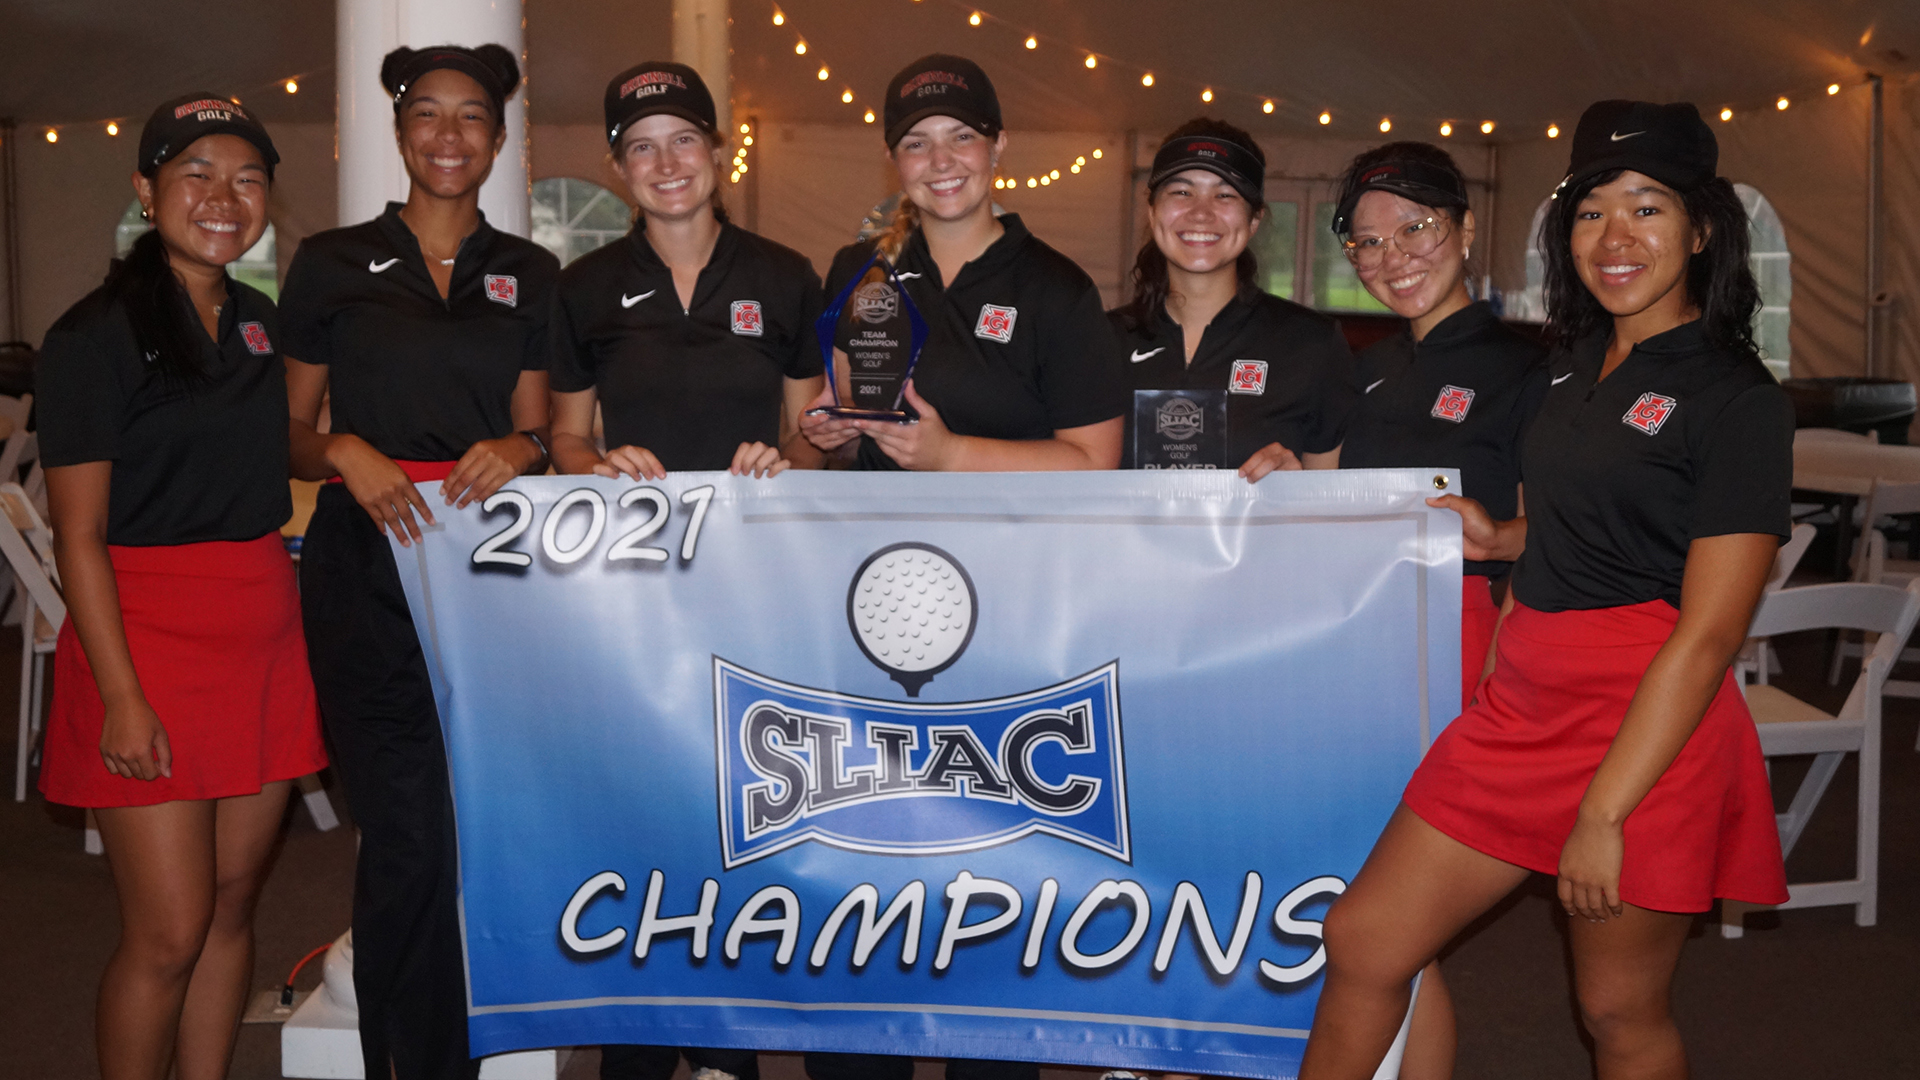 Grinnell Wins 3rd Straight Championship